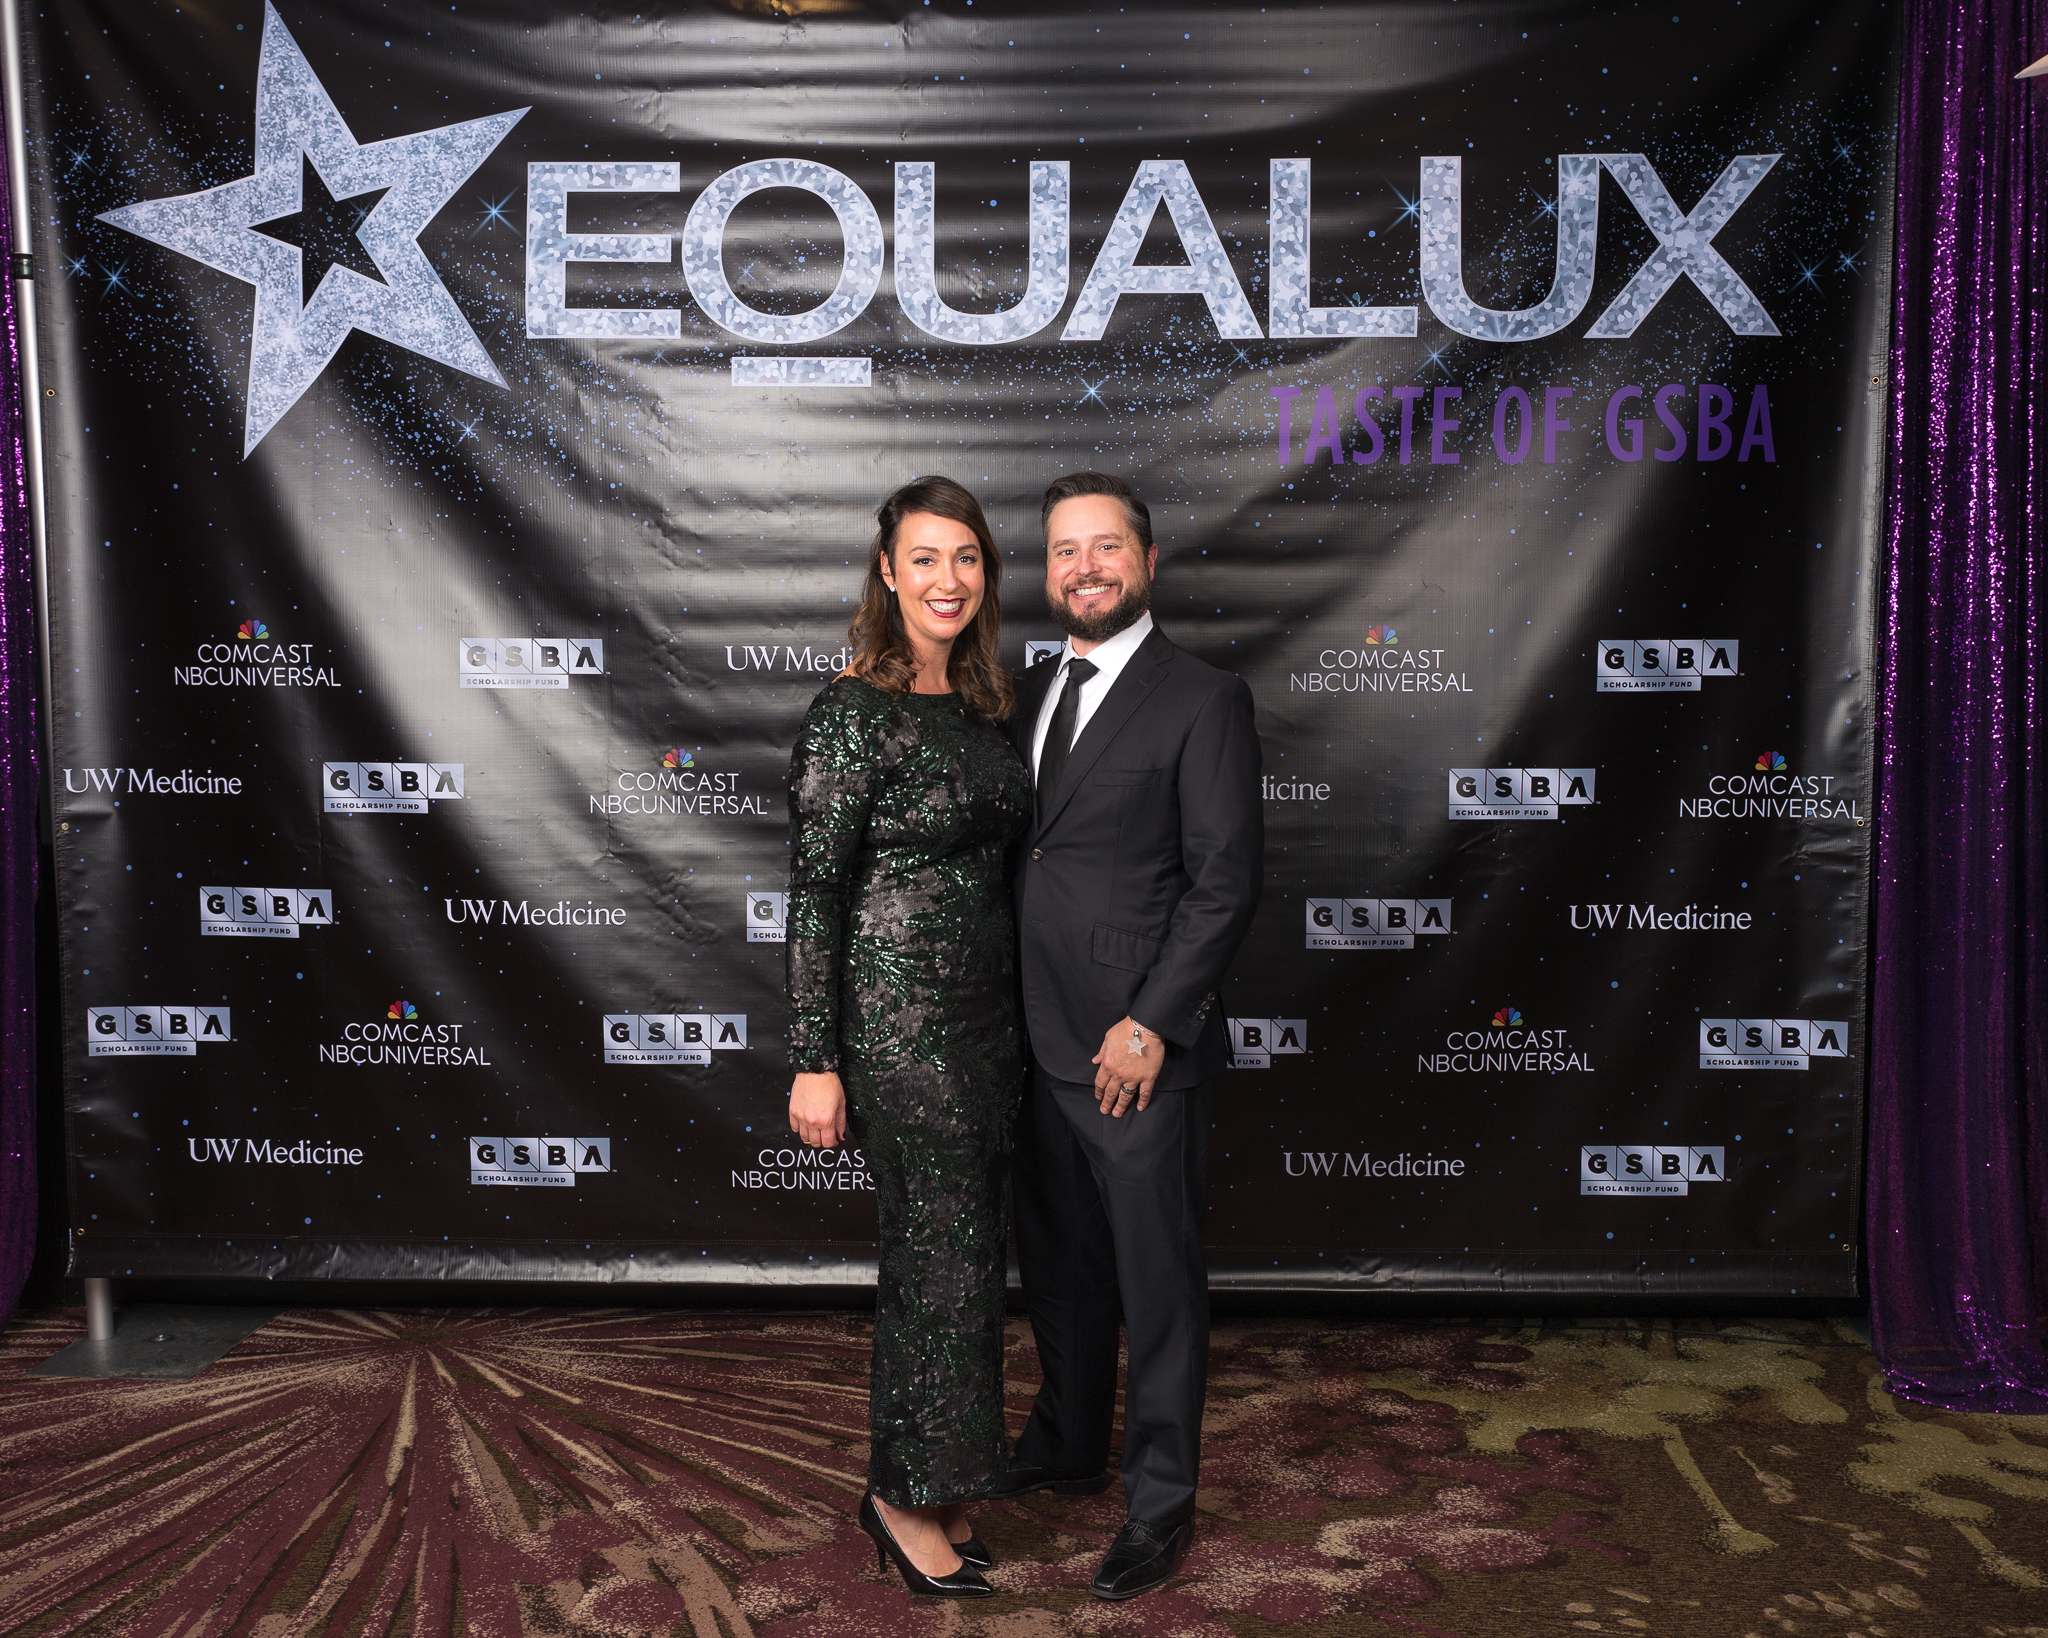 111718_GSBA EQUALUX at The Westin Seattle (Credit- Nate Gowdy)-109.jpg